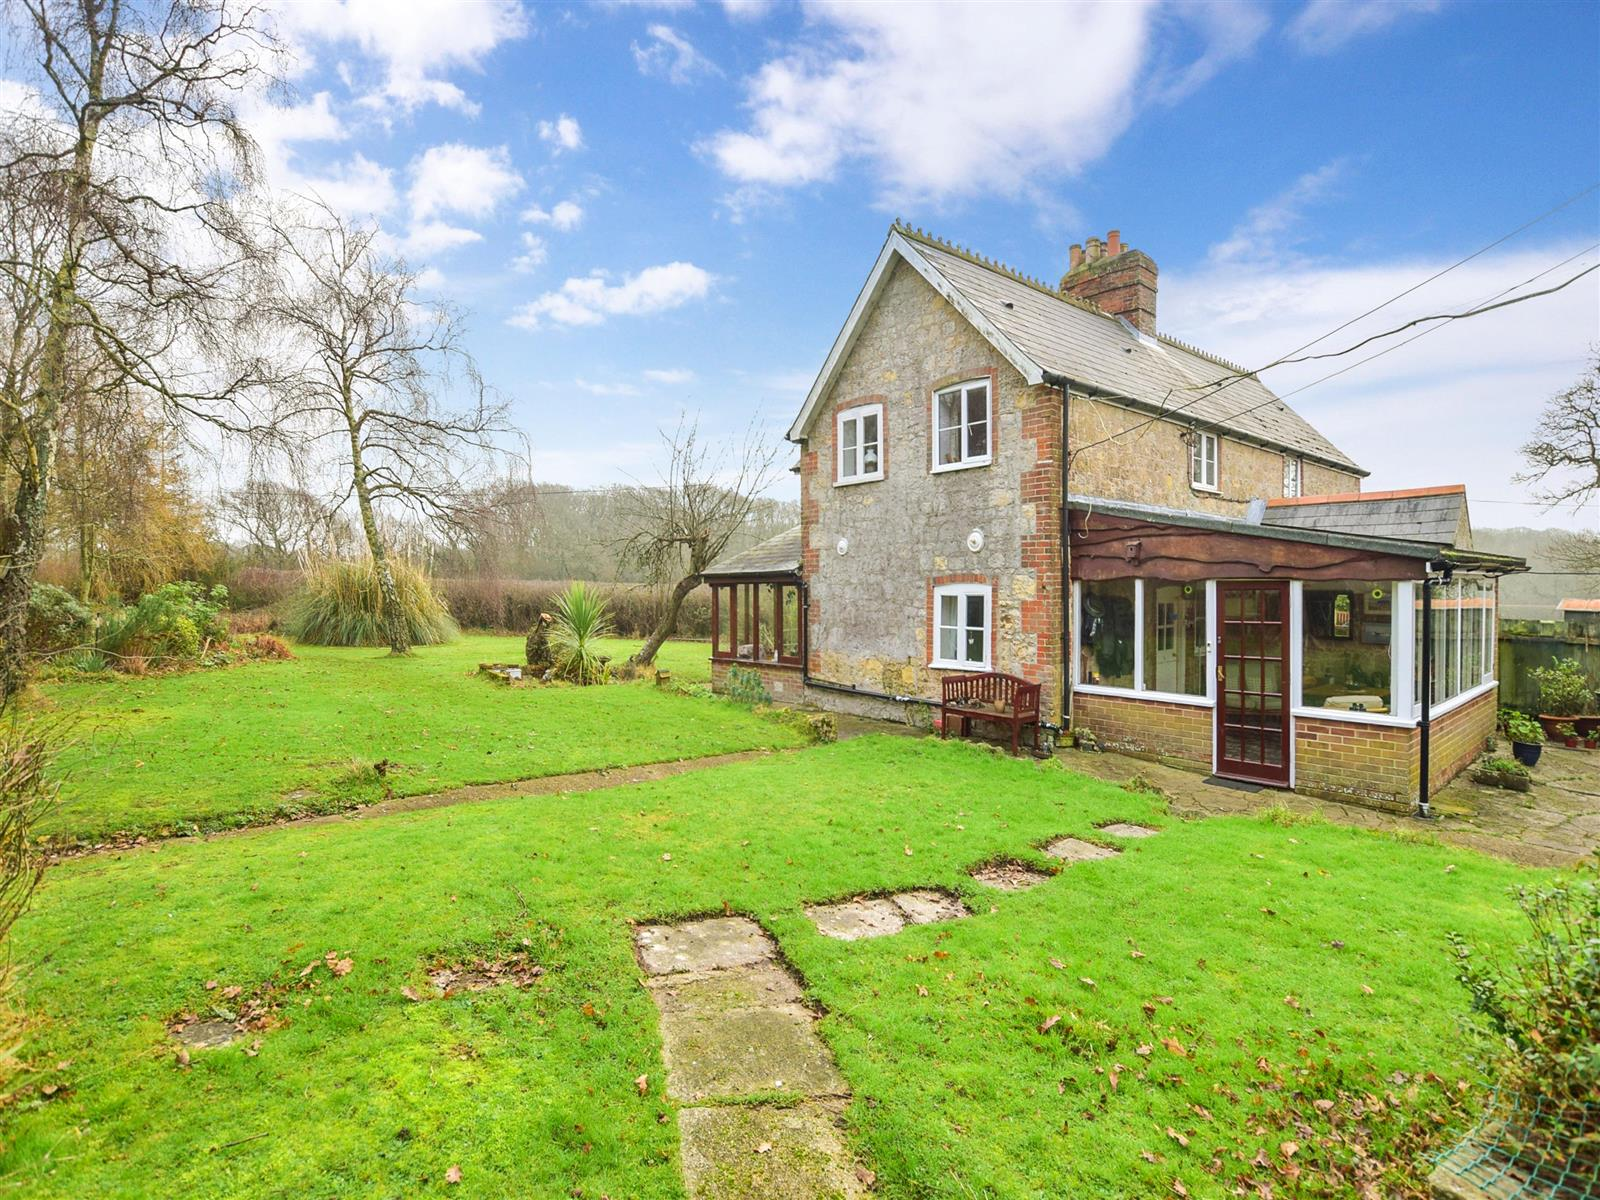 Outbuildings Adding Value To Property